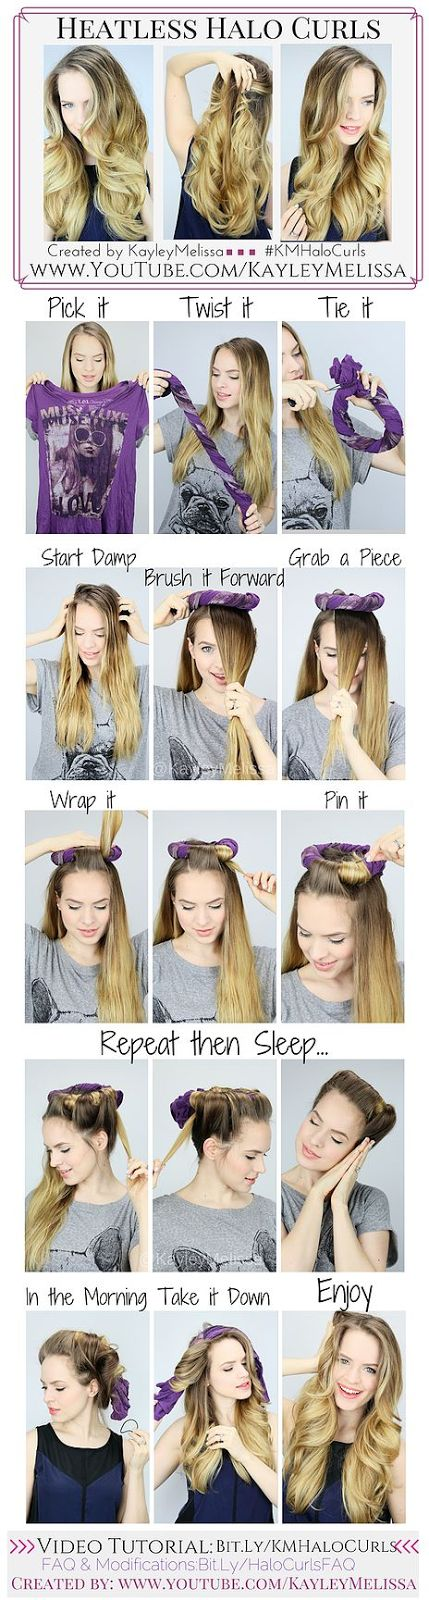 18 Overnight Hair Tutorials That Will Let You Wake Up With Perfect Curls